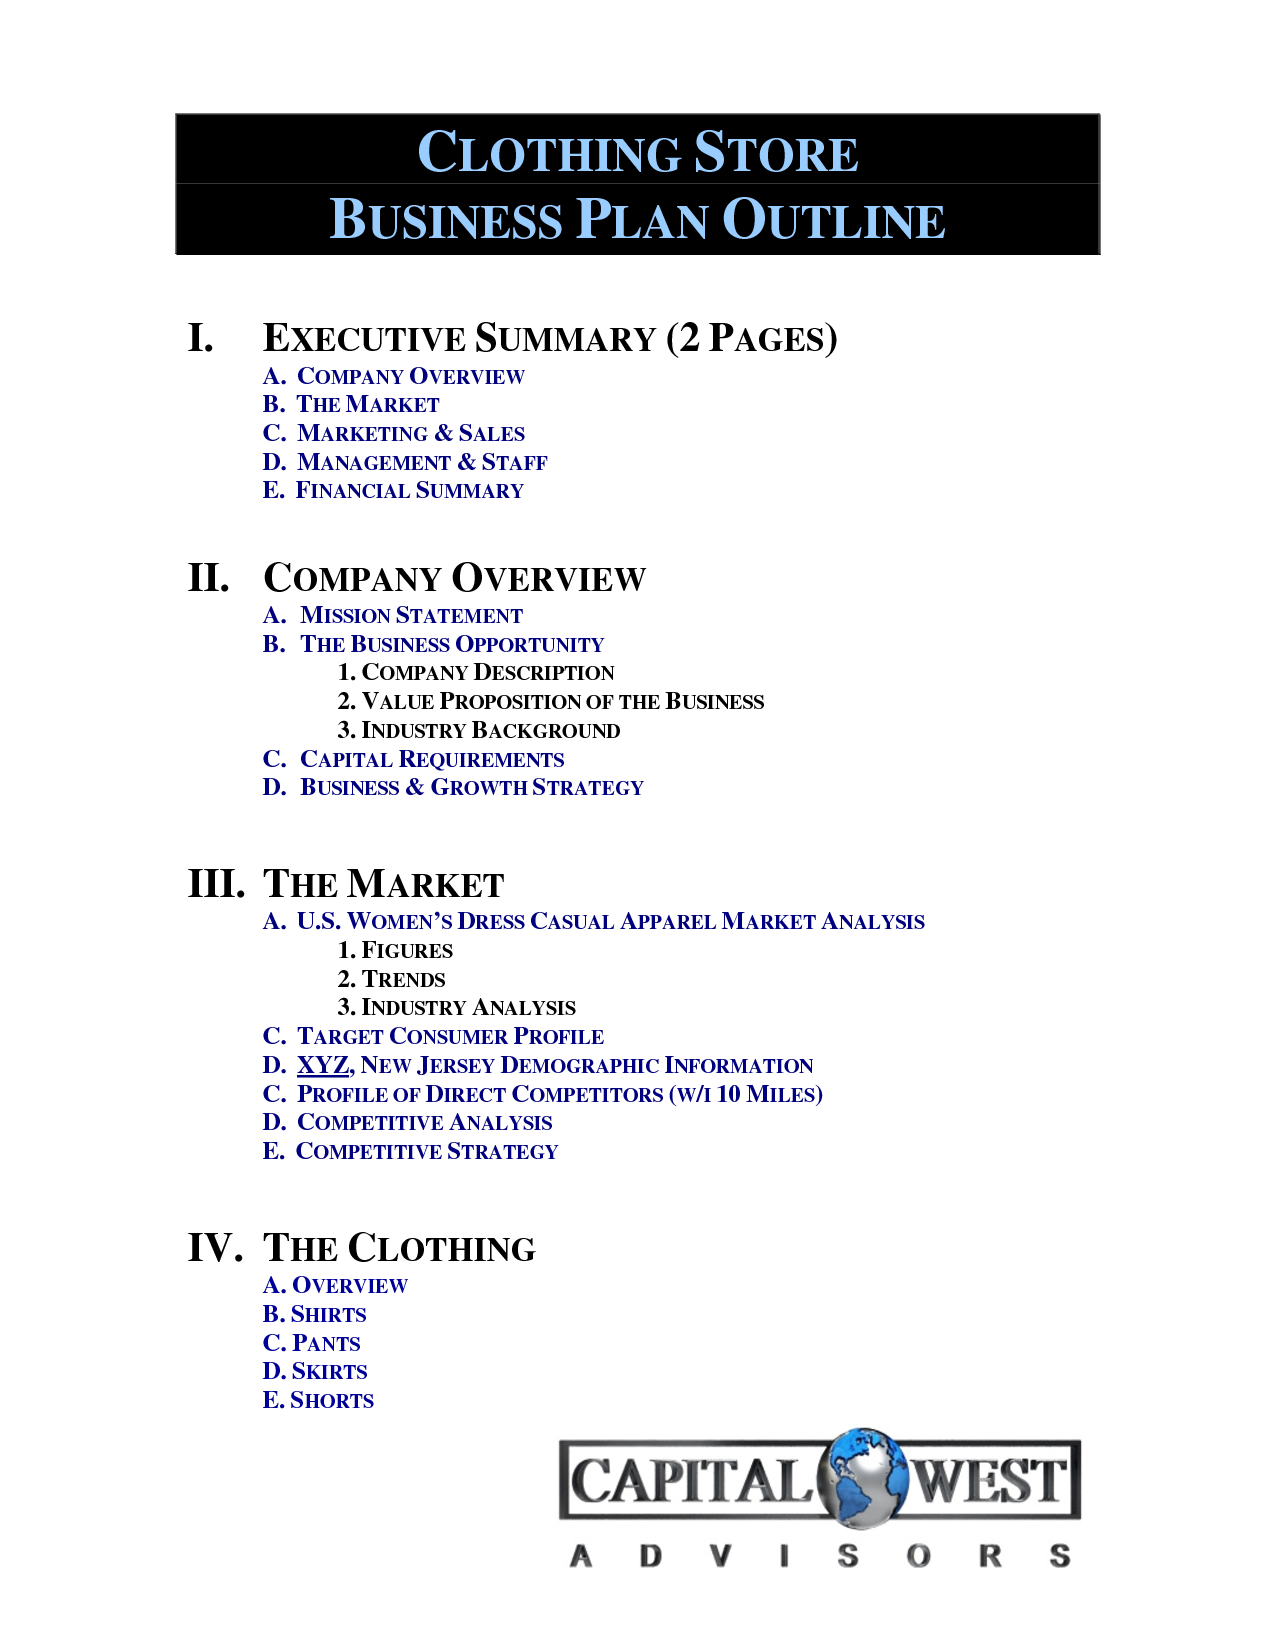 Clothing line business plan template free free business template clothing line business plan template free free business template accmission Gallery